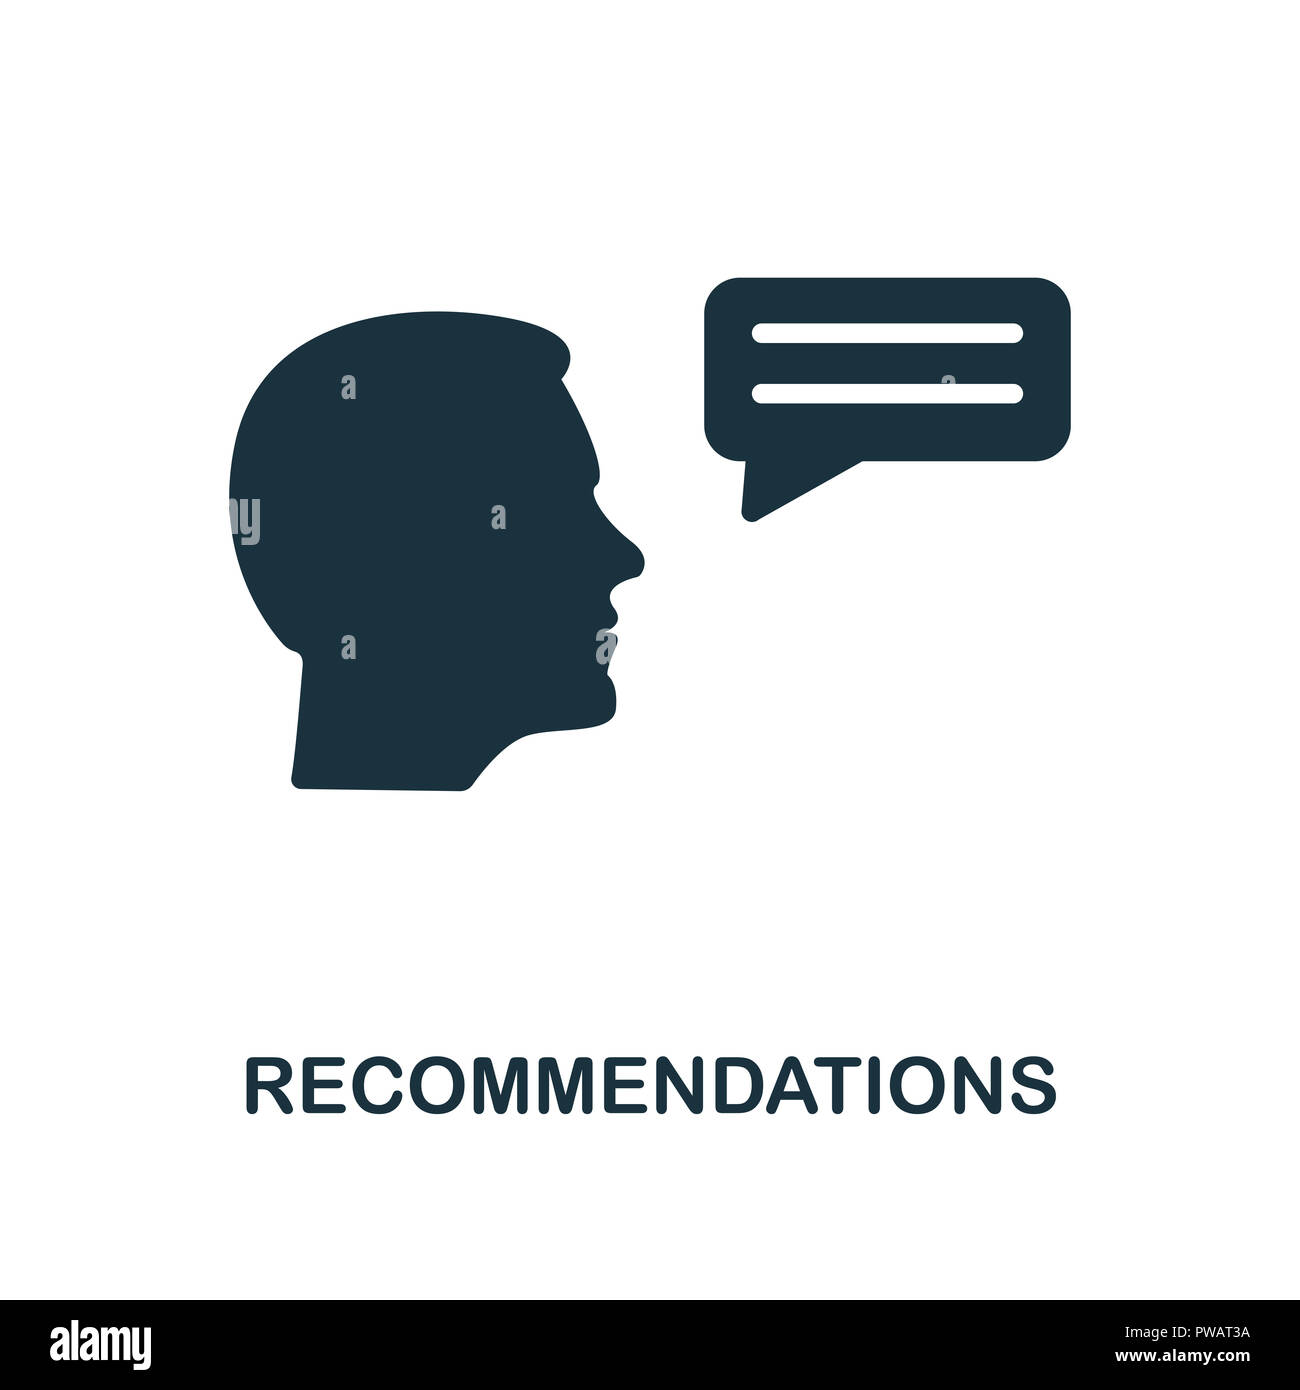 Recommendations icon. Monochrome style design from business ethics collection. UX and UI. Pixel perfect recommendations icon. For web design, apps, so - Stock Image